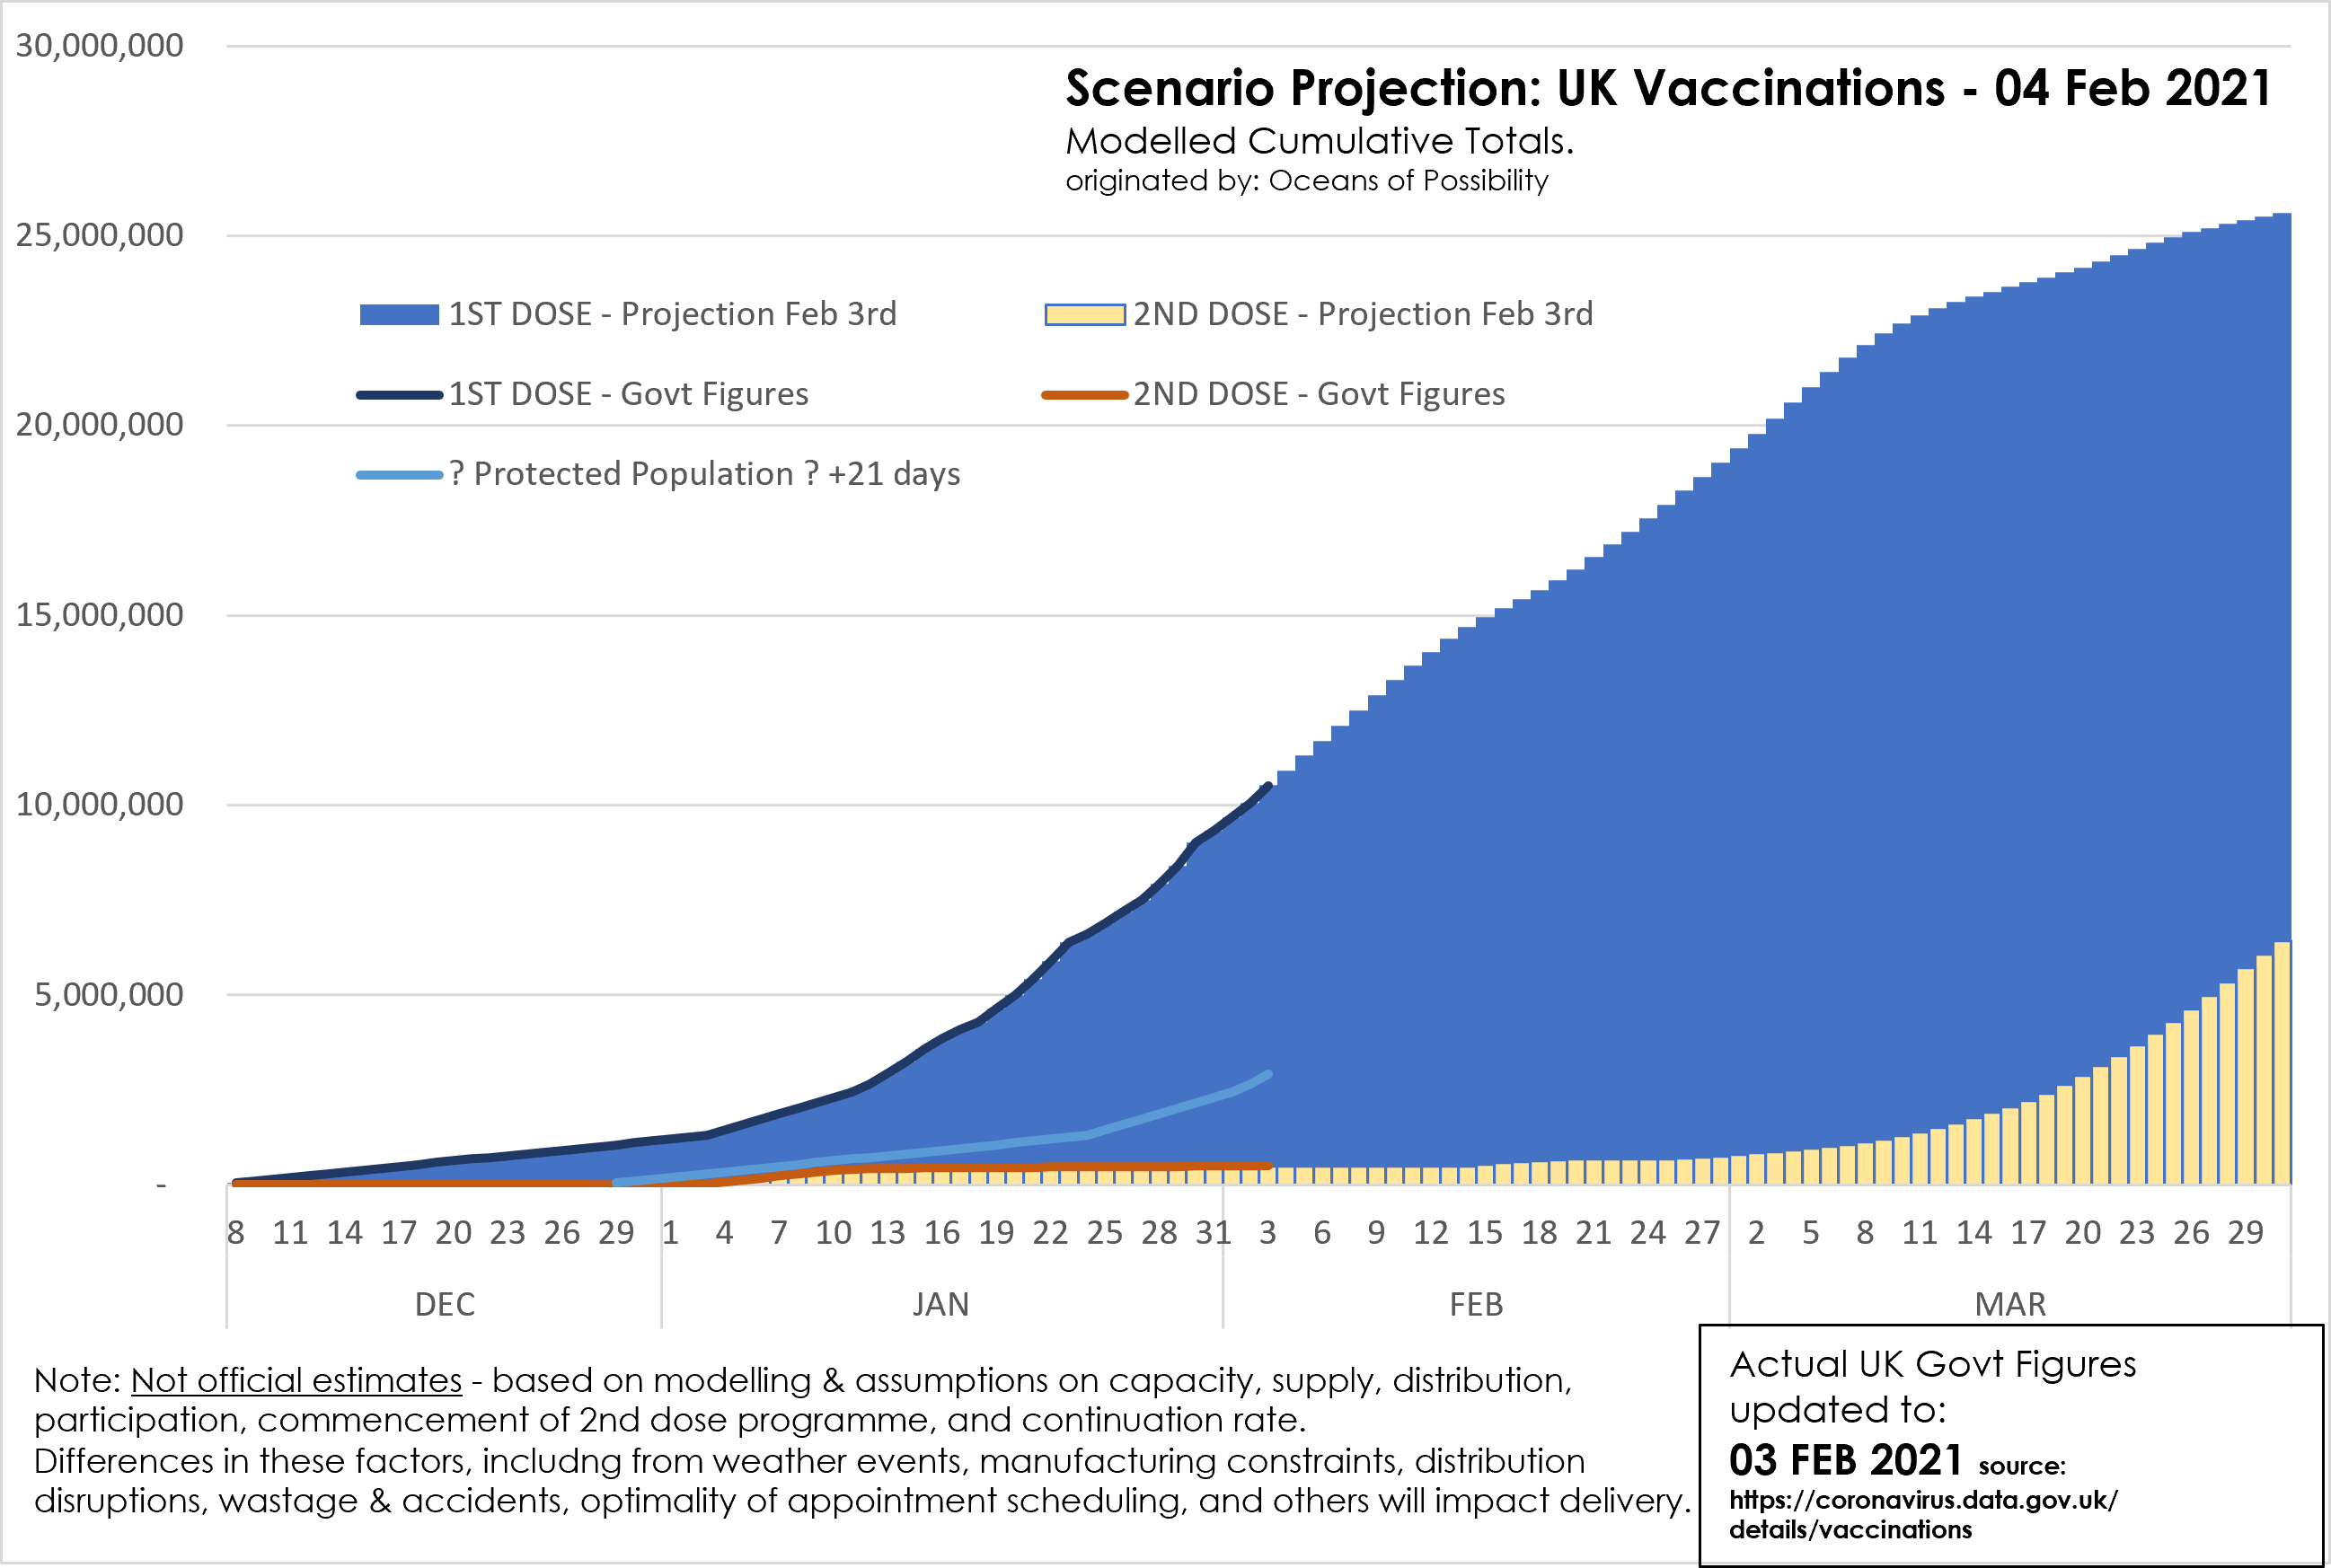 GovtReported-VS-20210203-ScenarioProjection-UKVaccinationsToMarch